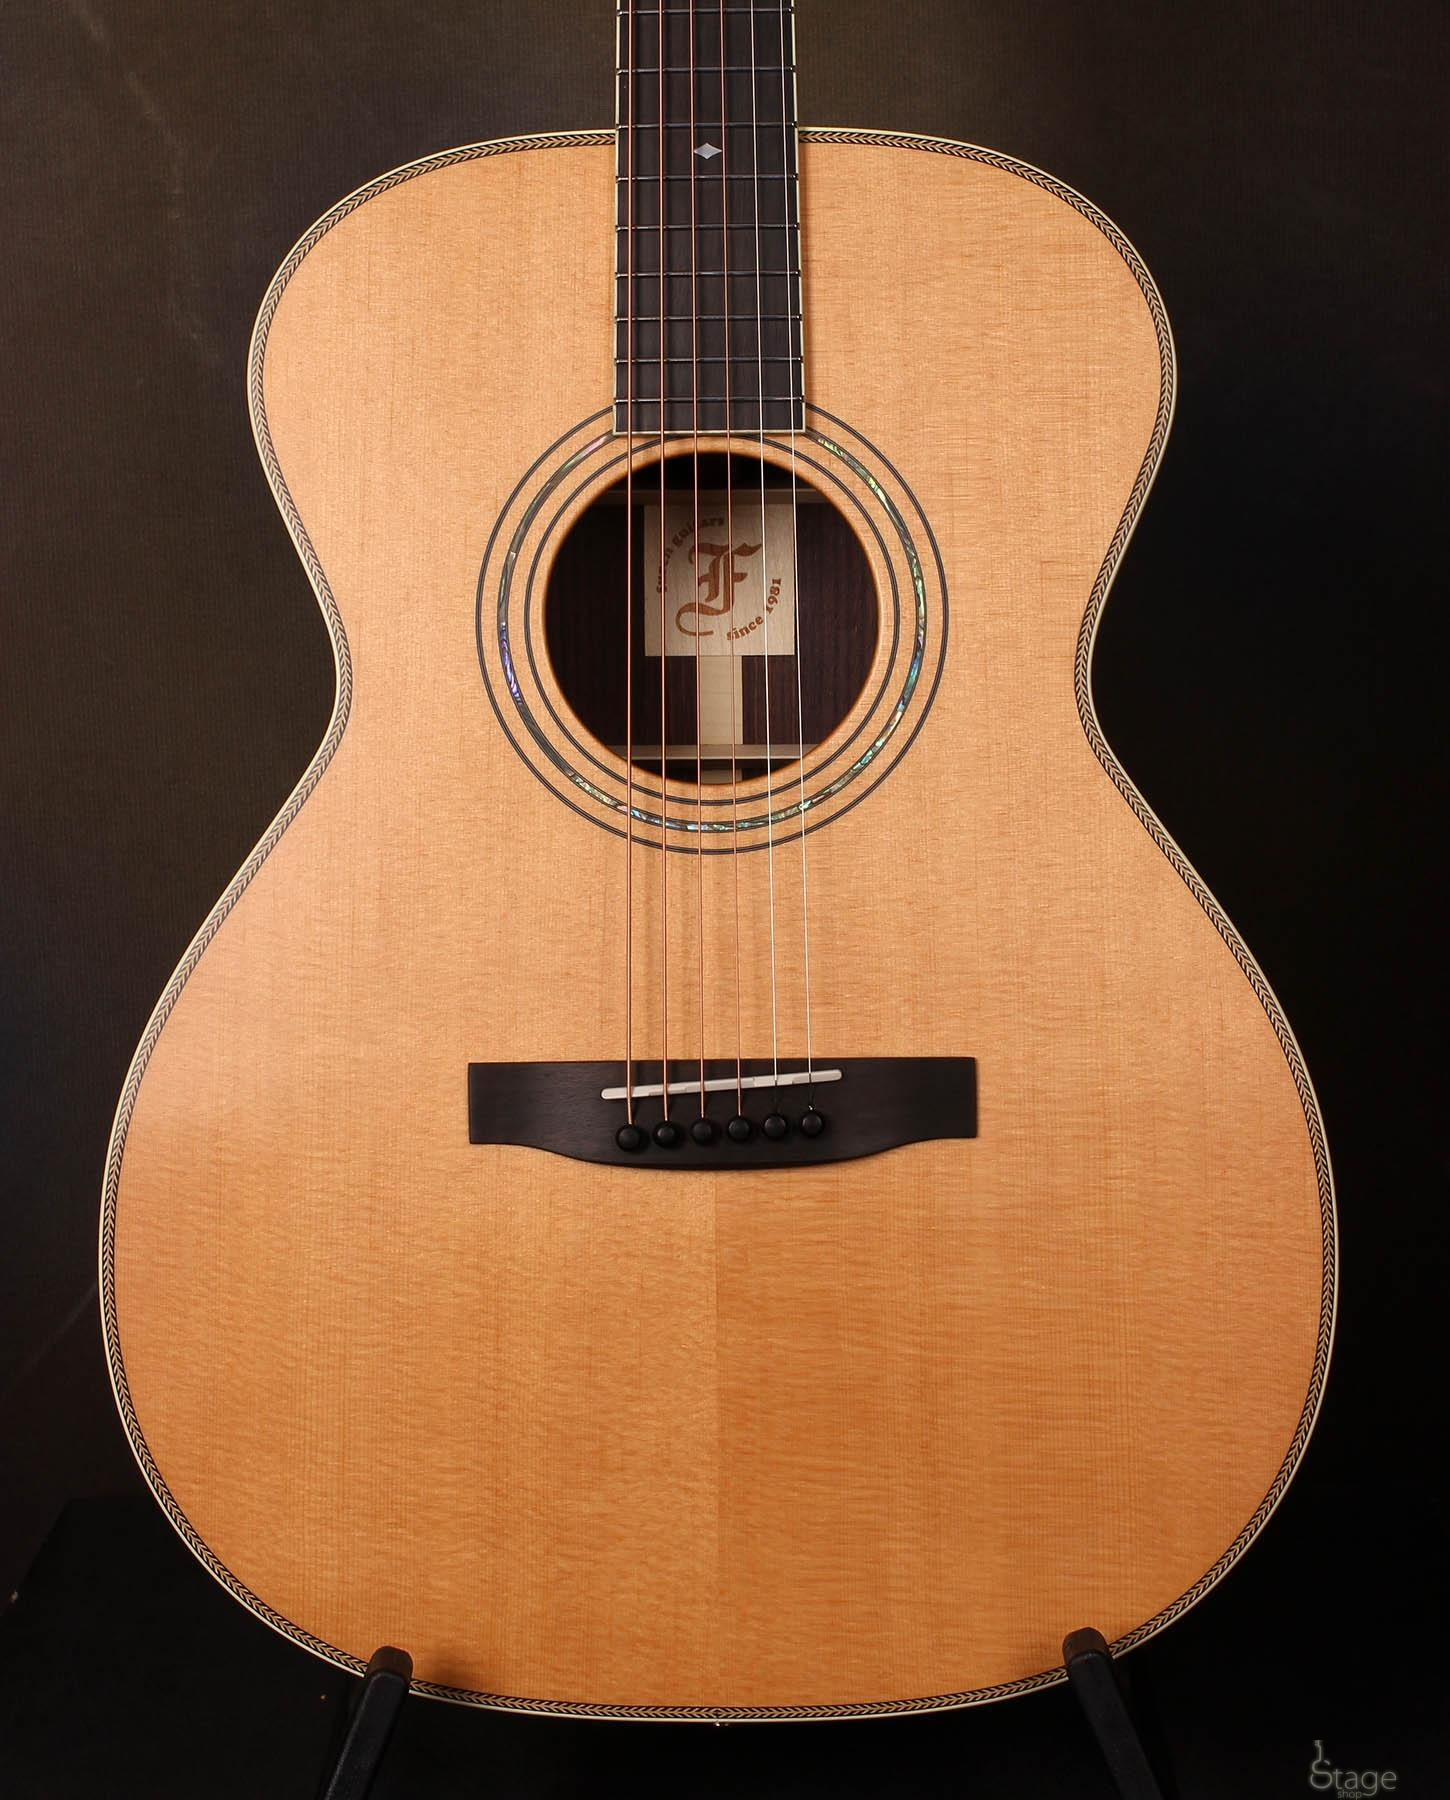 Furch OM34-SR CUSTOM SLOT 45mm NUT Acoustic Guitar